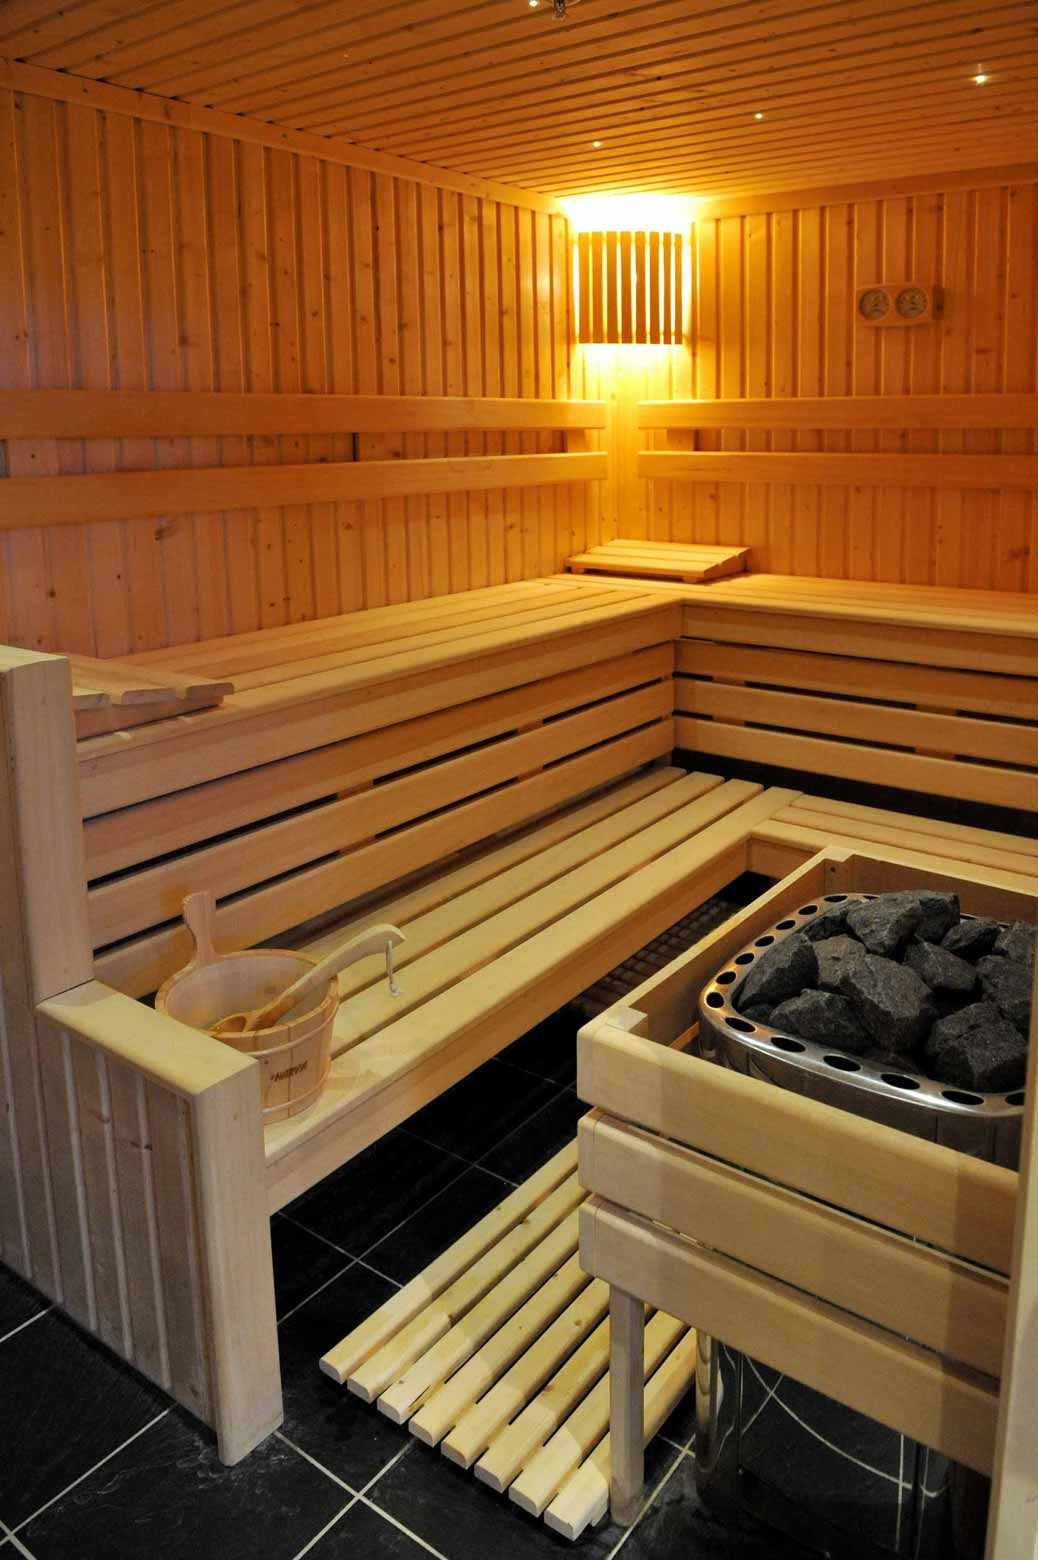 sauna ou hammam comment choisir. Black Bedroom Furniture Sets. Home Design Ideas